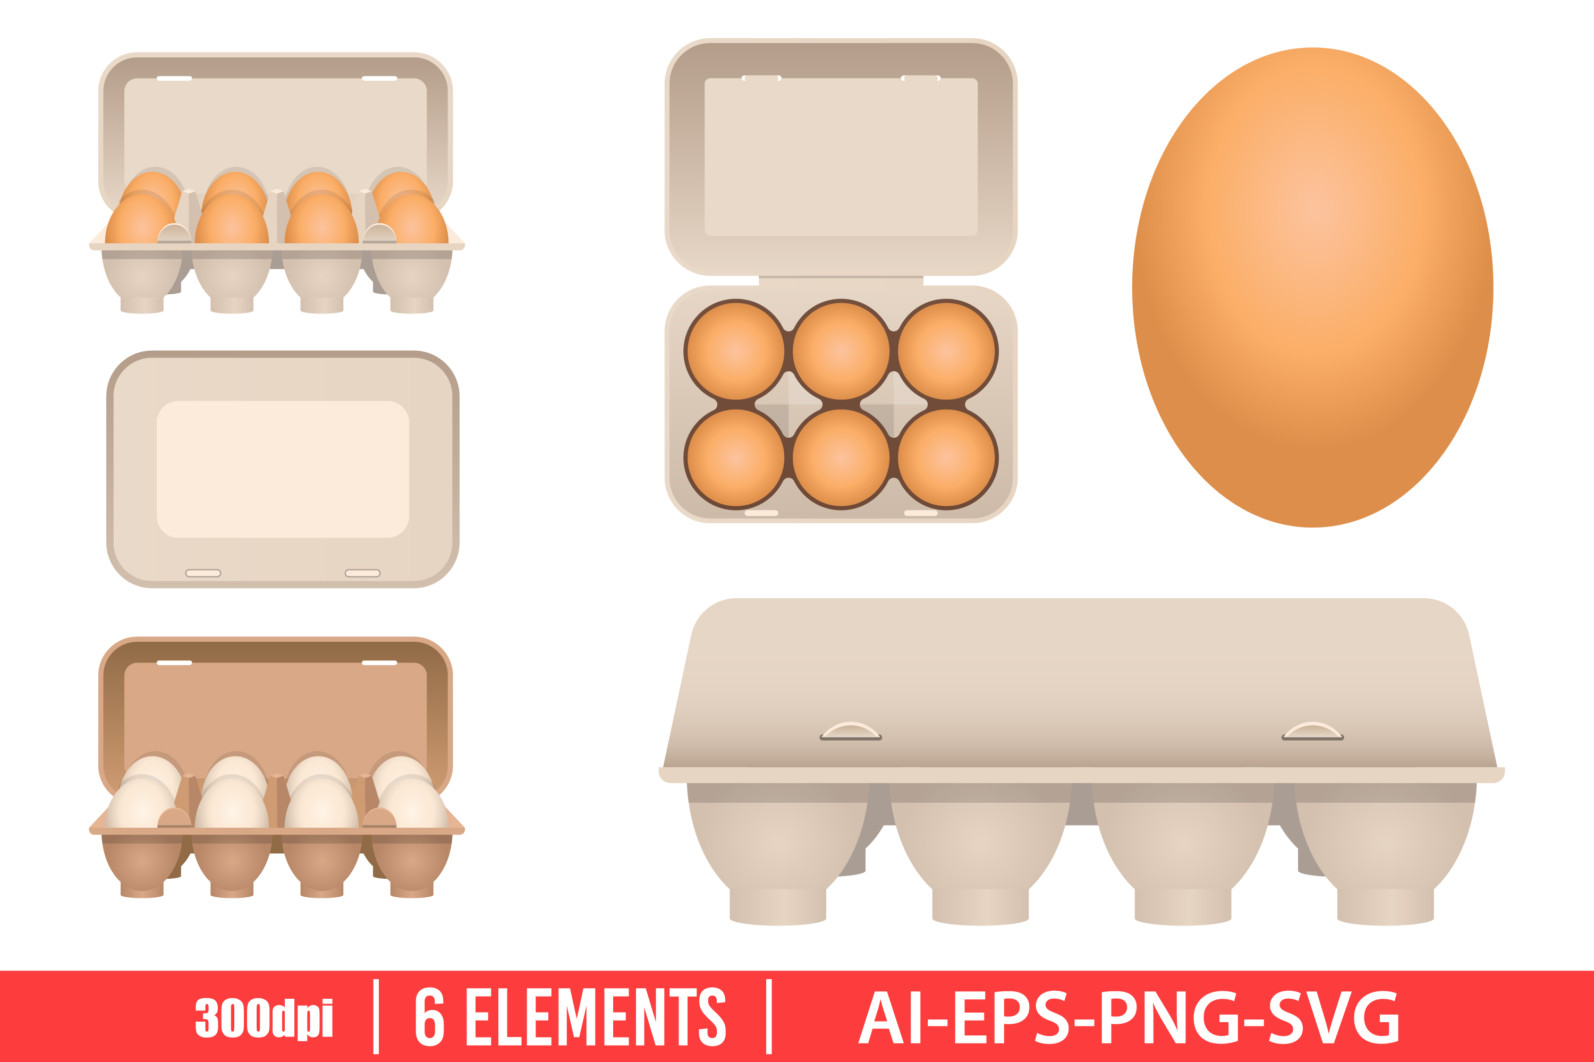 Chicken eggs in carton clipart vector design illustration. Eggs set. Vector Clipart Print - EGG PACKAGE scaled -